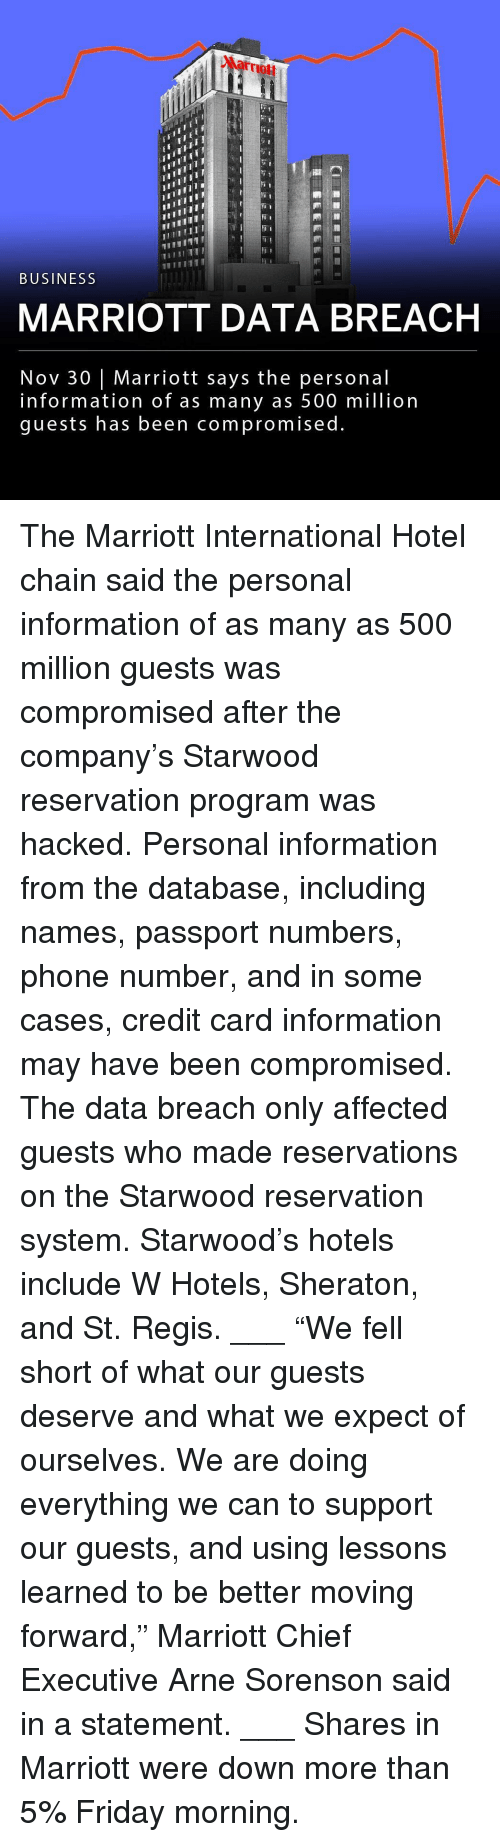 """reservations: Marrmott  ITII  TII  BUSINESS  MARRIOTT DATA BREACH  Nov 30  Marriott says the personal  information of as many as 500 million  guests has been compromised. The Marriott International Hotel chain said the personal information of as many as 500 million guests was compromised after the company's Starwood reservation program was hacked. Personal information from the database, including names, passport numbers, phone number, and in some cases, credit card information may have been compromised. The data breach only affected guests who made reservations on the Starwood reservation system. Starwood's hotels include W Hotels, Sheraton, and St. Regis. ___ """"We fell short of what our guests deserve and what we expect of ourselves. We are doing everything we can to support our guests, and using lessons learned to be better moving forward,"""" Marriott Chief Executive Arne Sorenson said in a statement. ___ Shares in Marriott were down more than 5% Friday morning."""